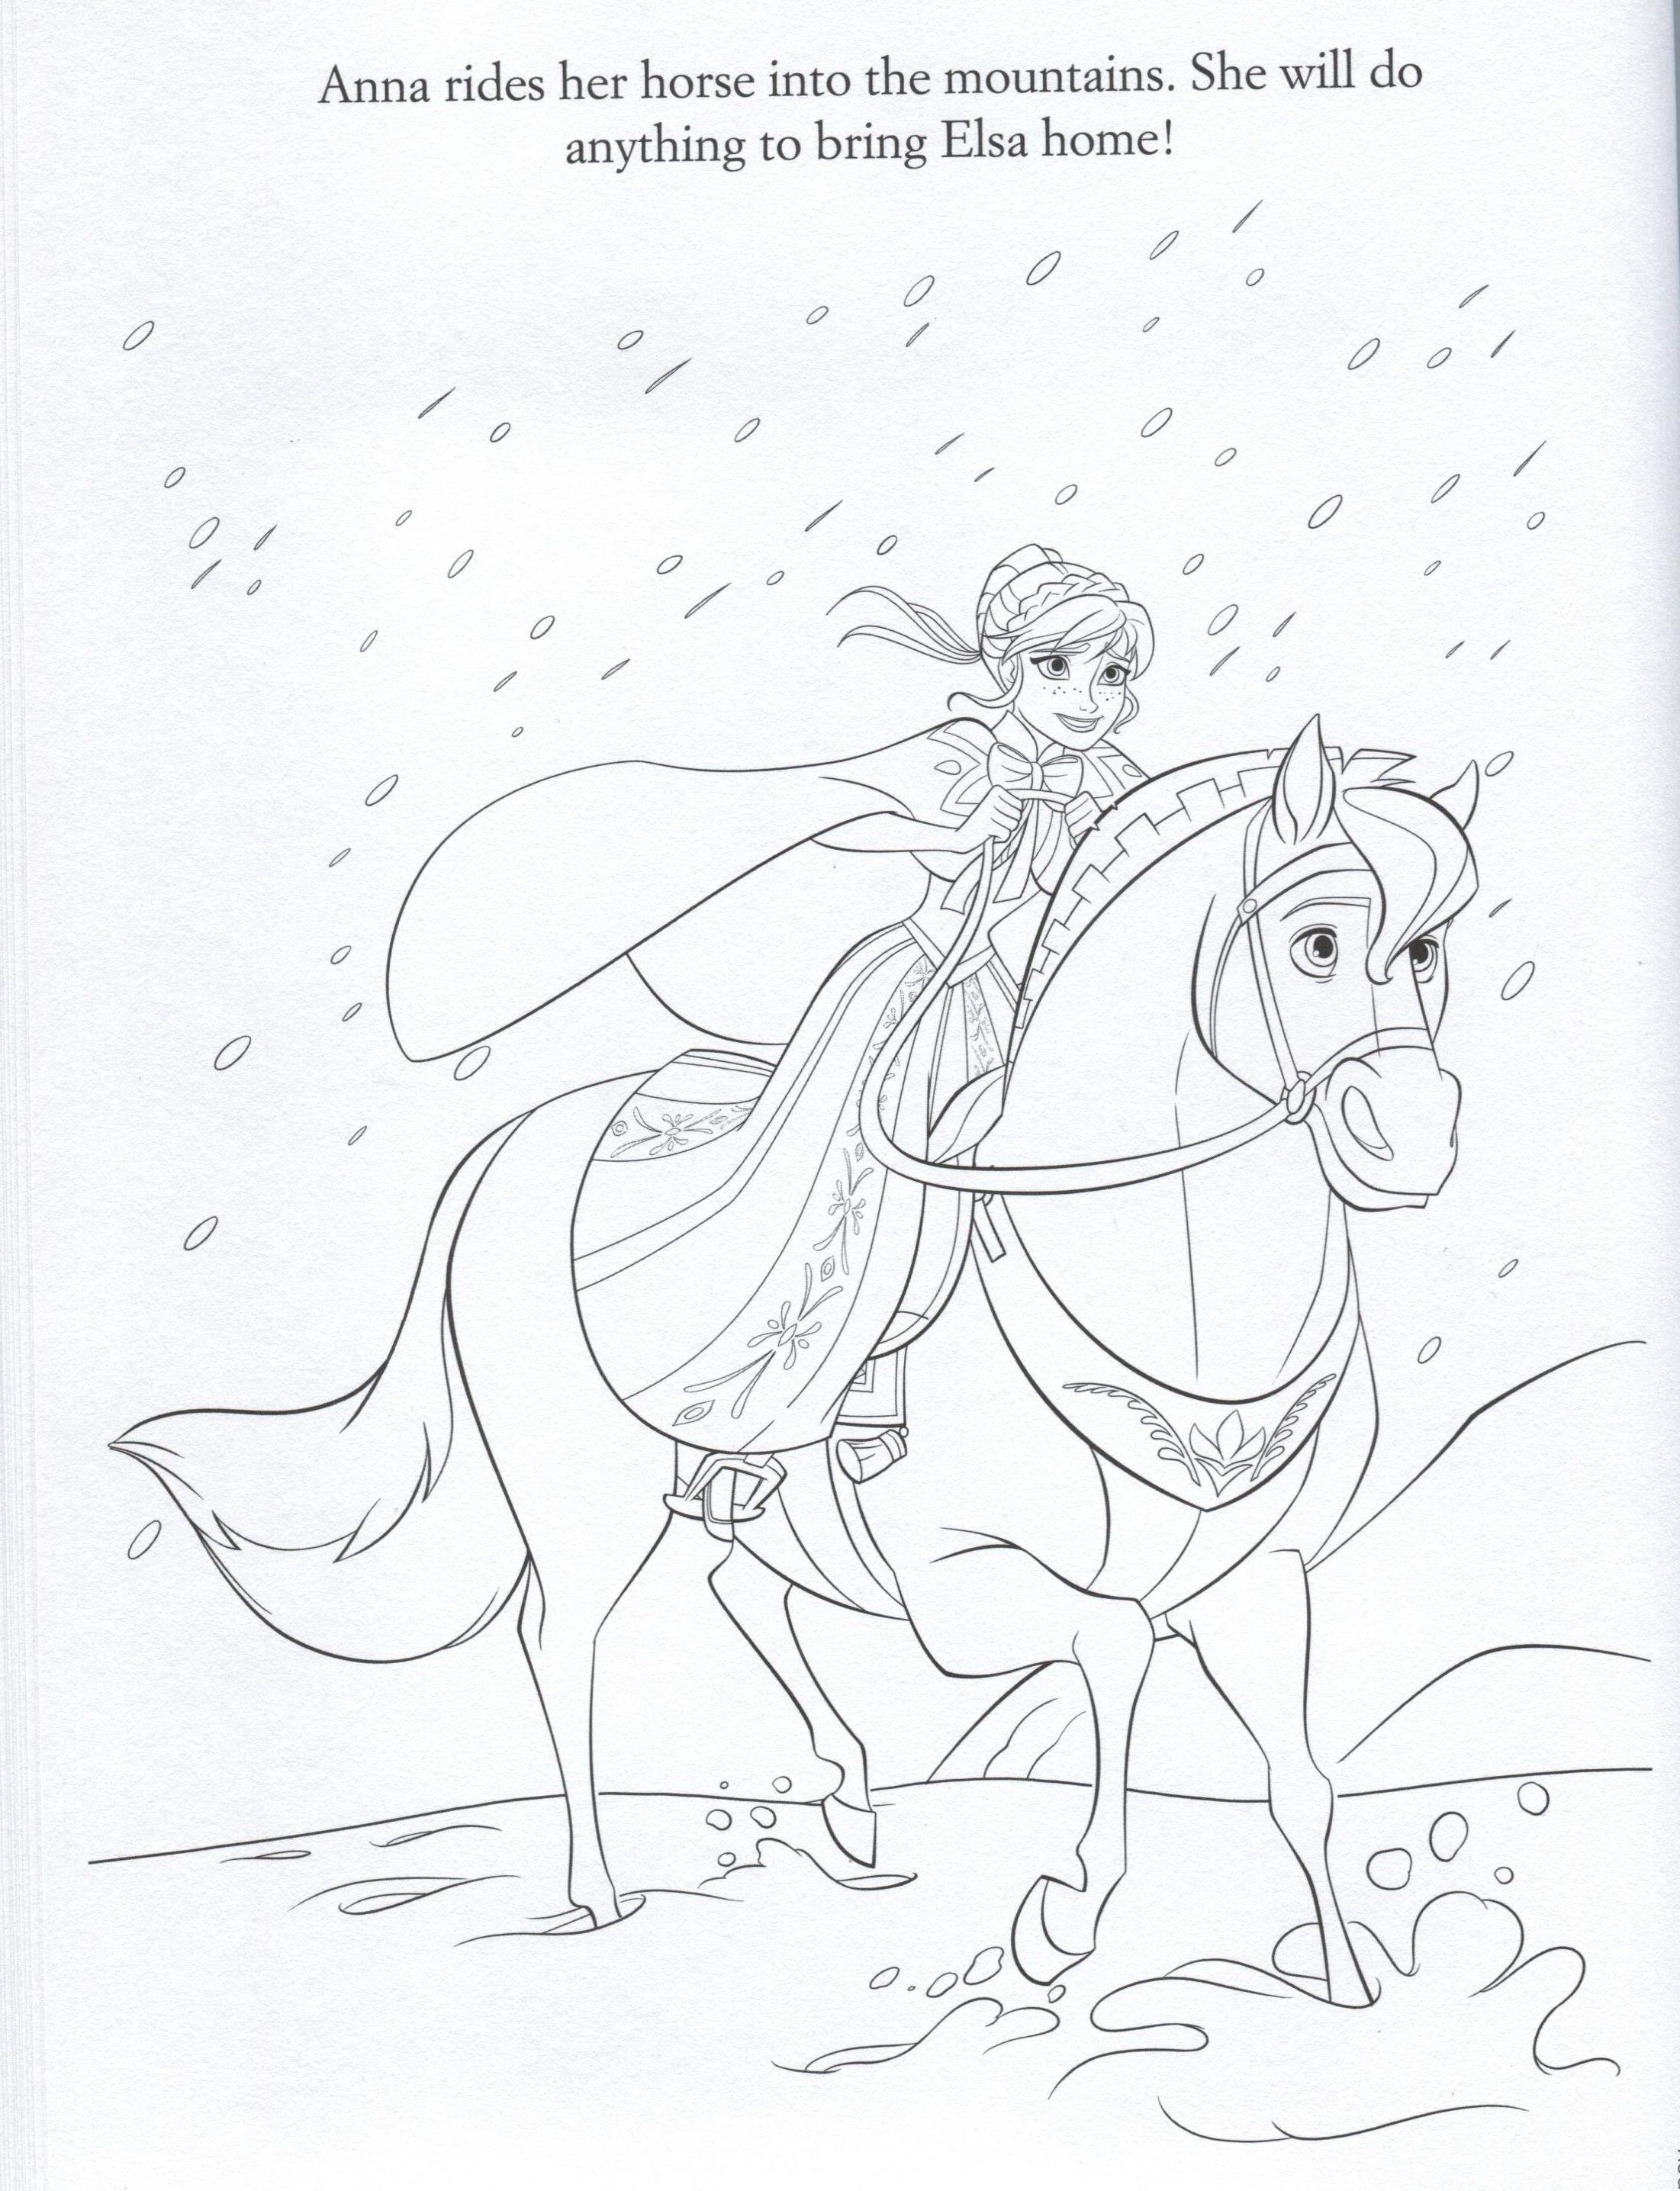 Frozen Photo Official Frozen Illustrations Coloring Pages Frozen Coloring Pages Horse Coloring Pages Disney Coloring Pages